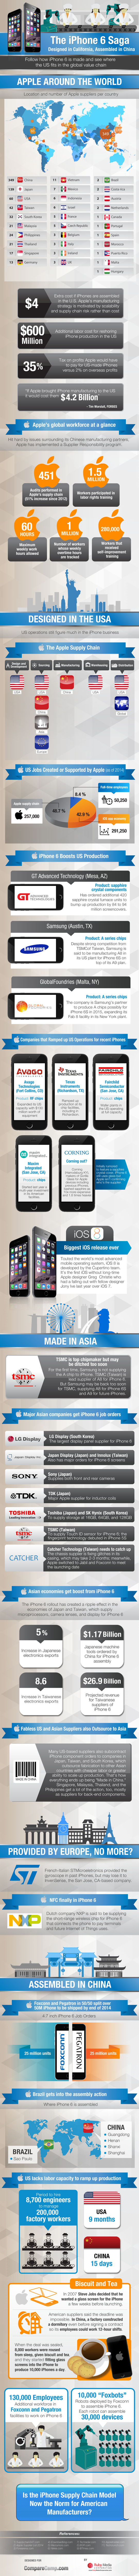 Where Are iPhones Made: Comparison Of Countries That Manufacture Apple's Smartphone